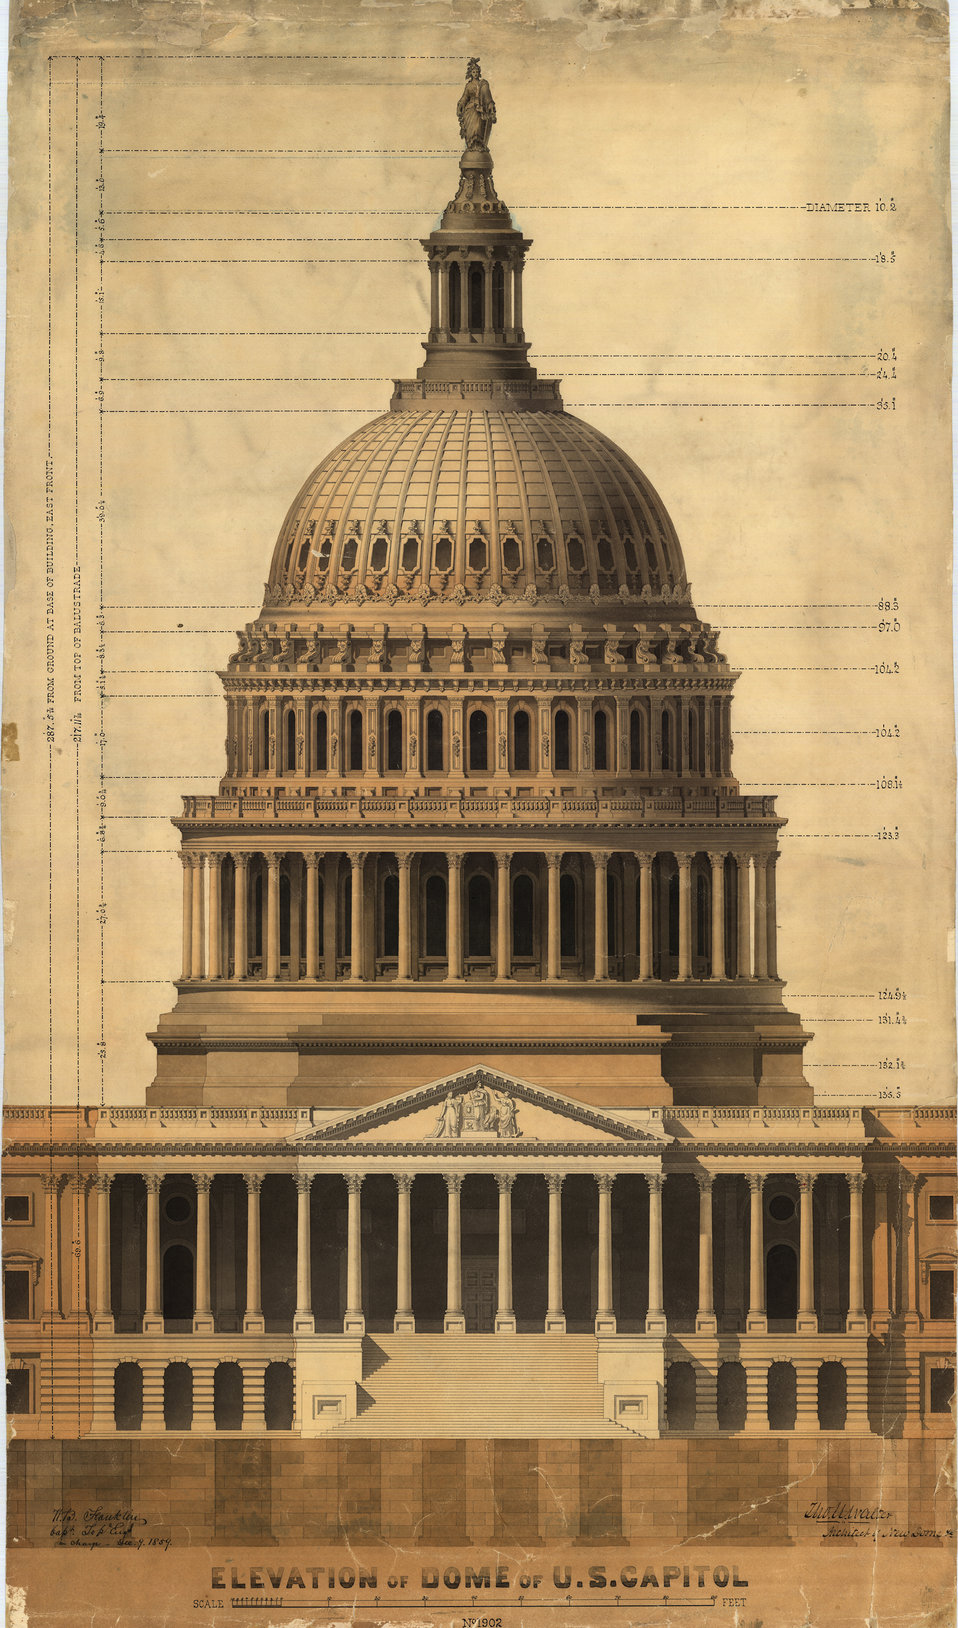 Elevation of the Dome of the U.S. Capitol